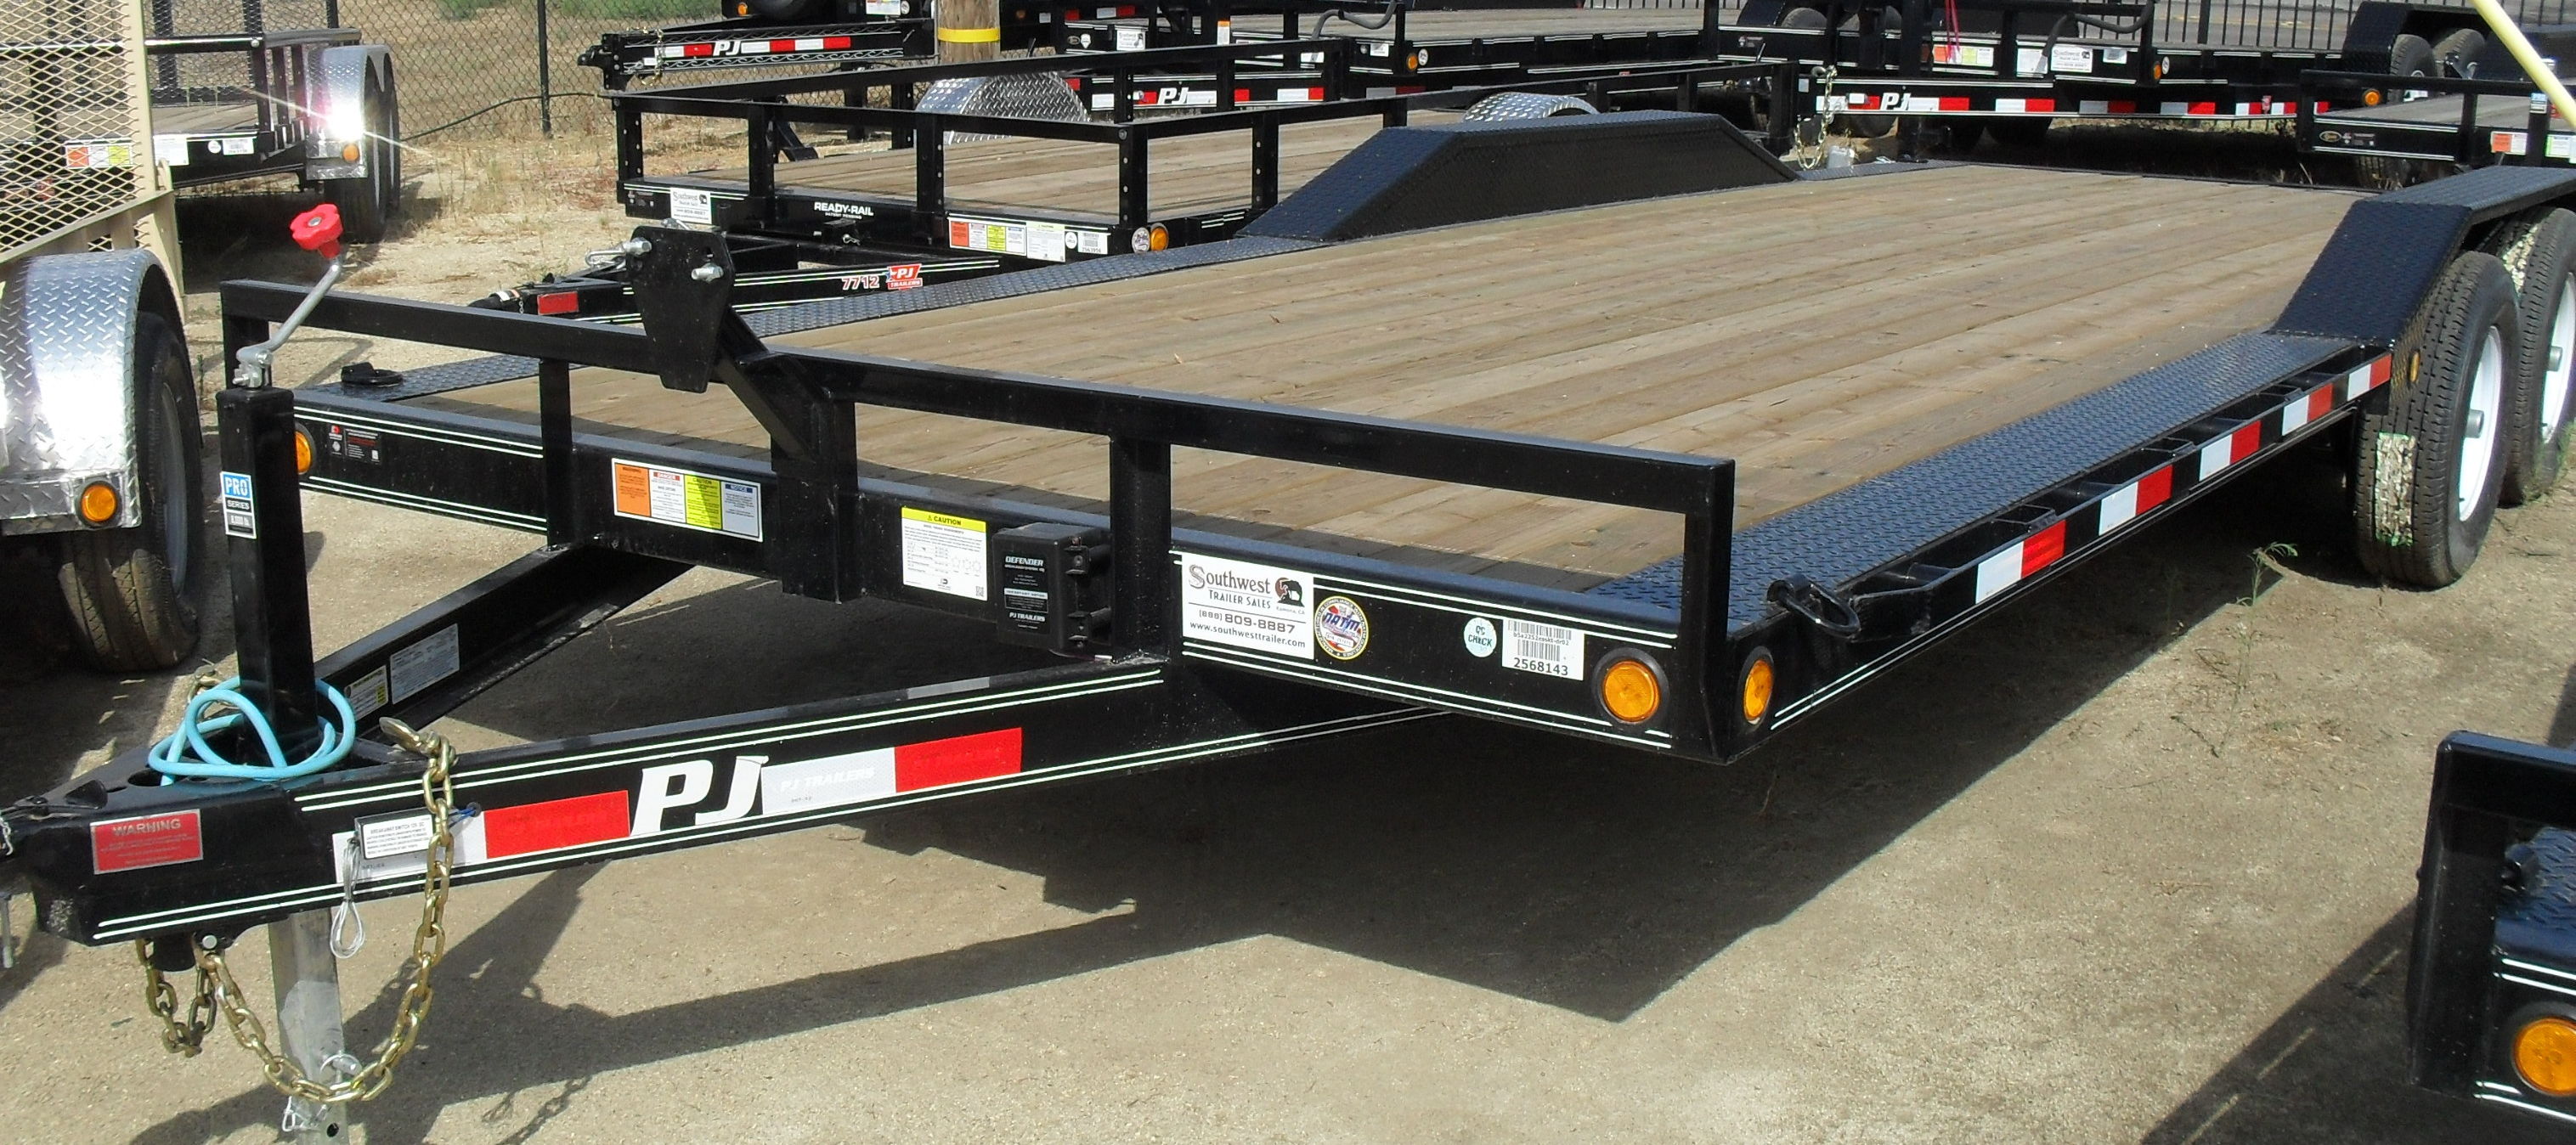 2018 B5222 CHANNEL BUGGY HAULER CONTACT TO ORDER – Southwest Trailer